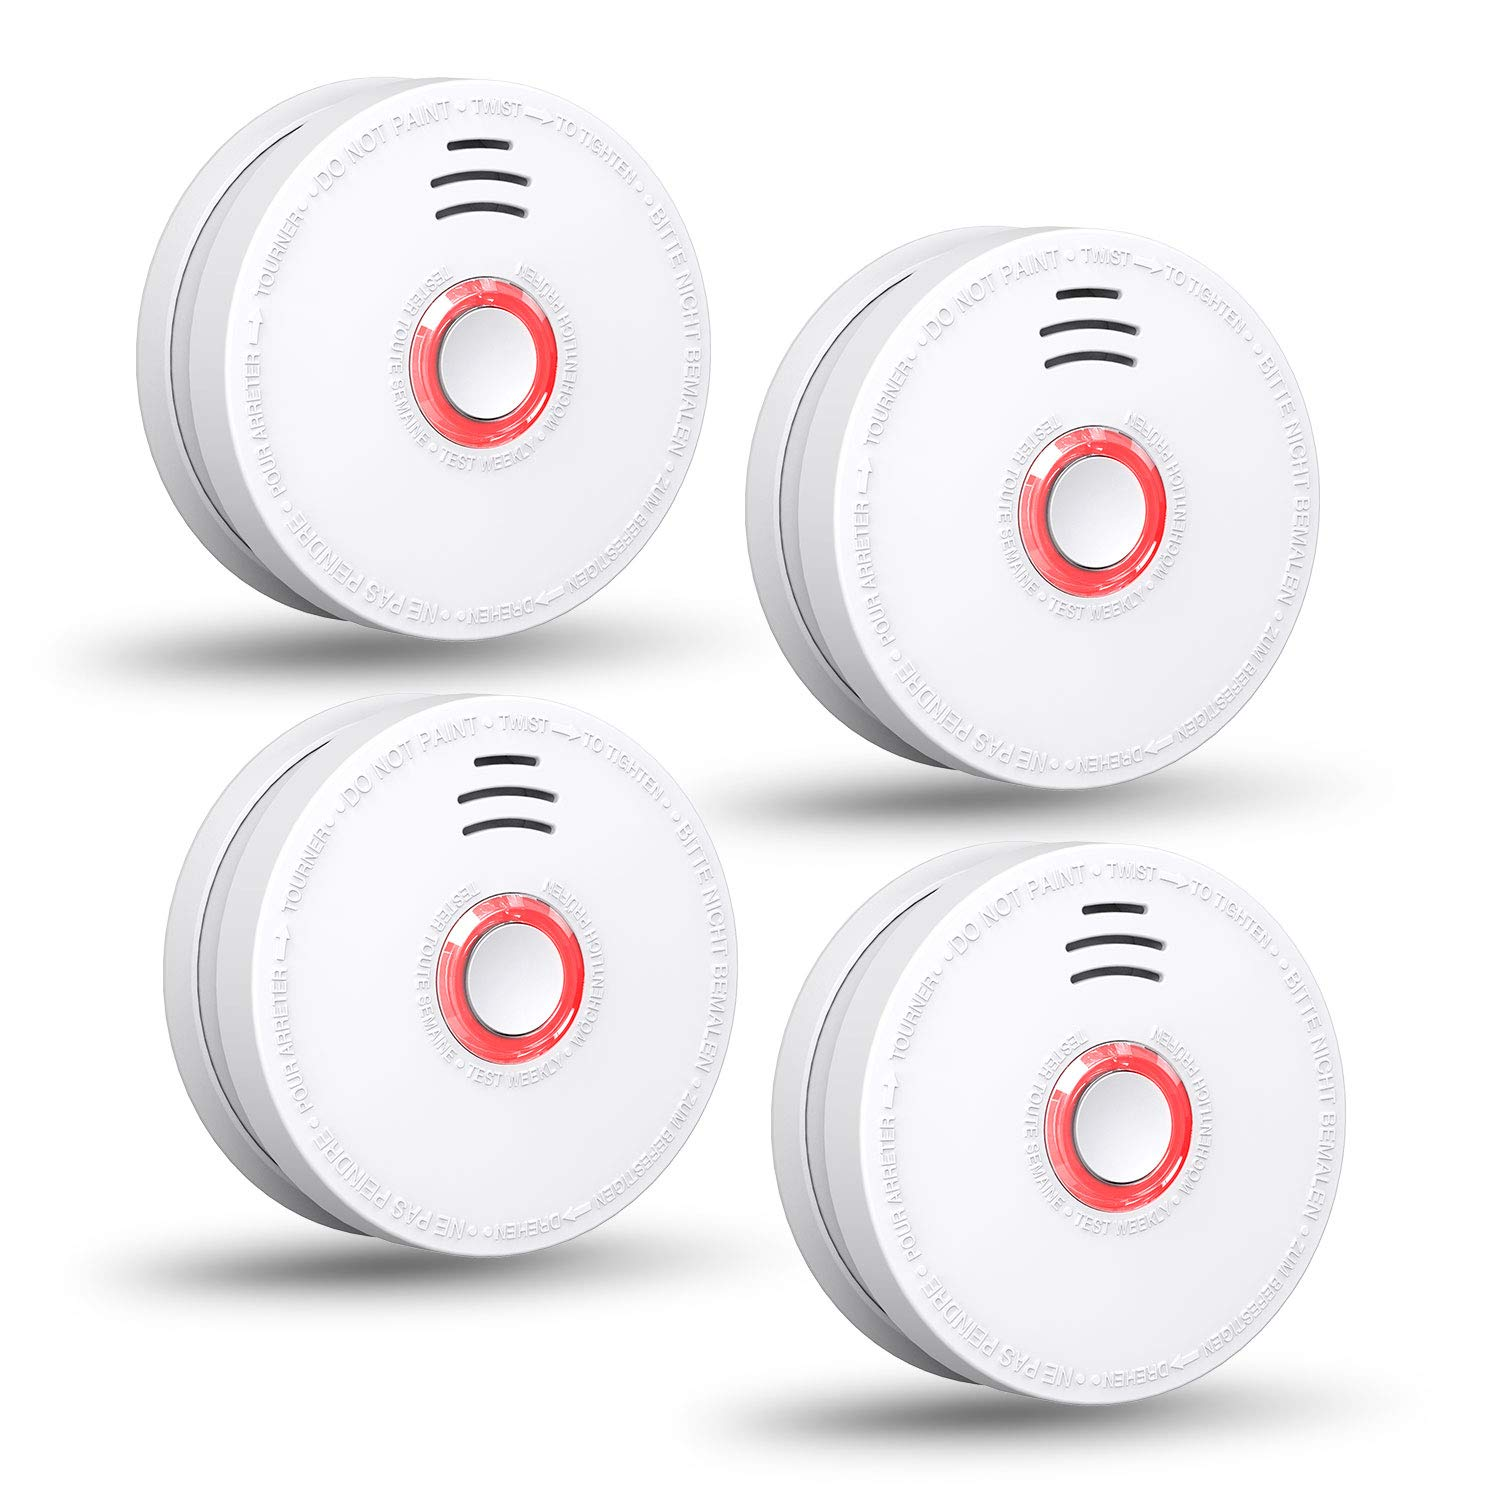 SITERWELL Smoke Detector - Replacable 9V Battery Operated Smoke Alarm with Photoelectric Sensor, 10-Year Life Time Fire Alarm with UL Listed, Fire Safety for Kitchen,Home,Hotel, GS528A, 4 Packs